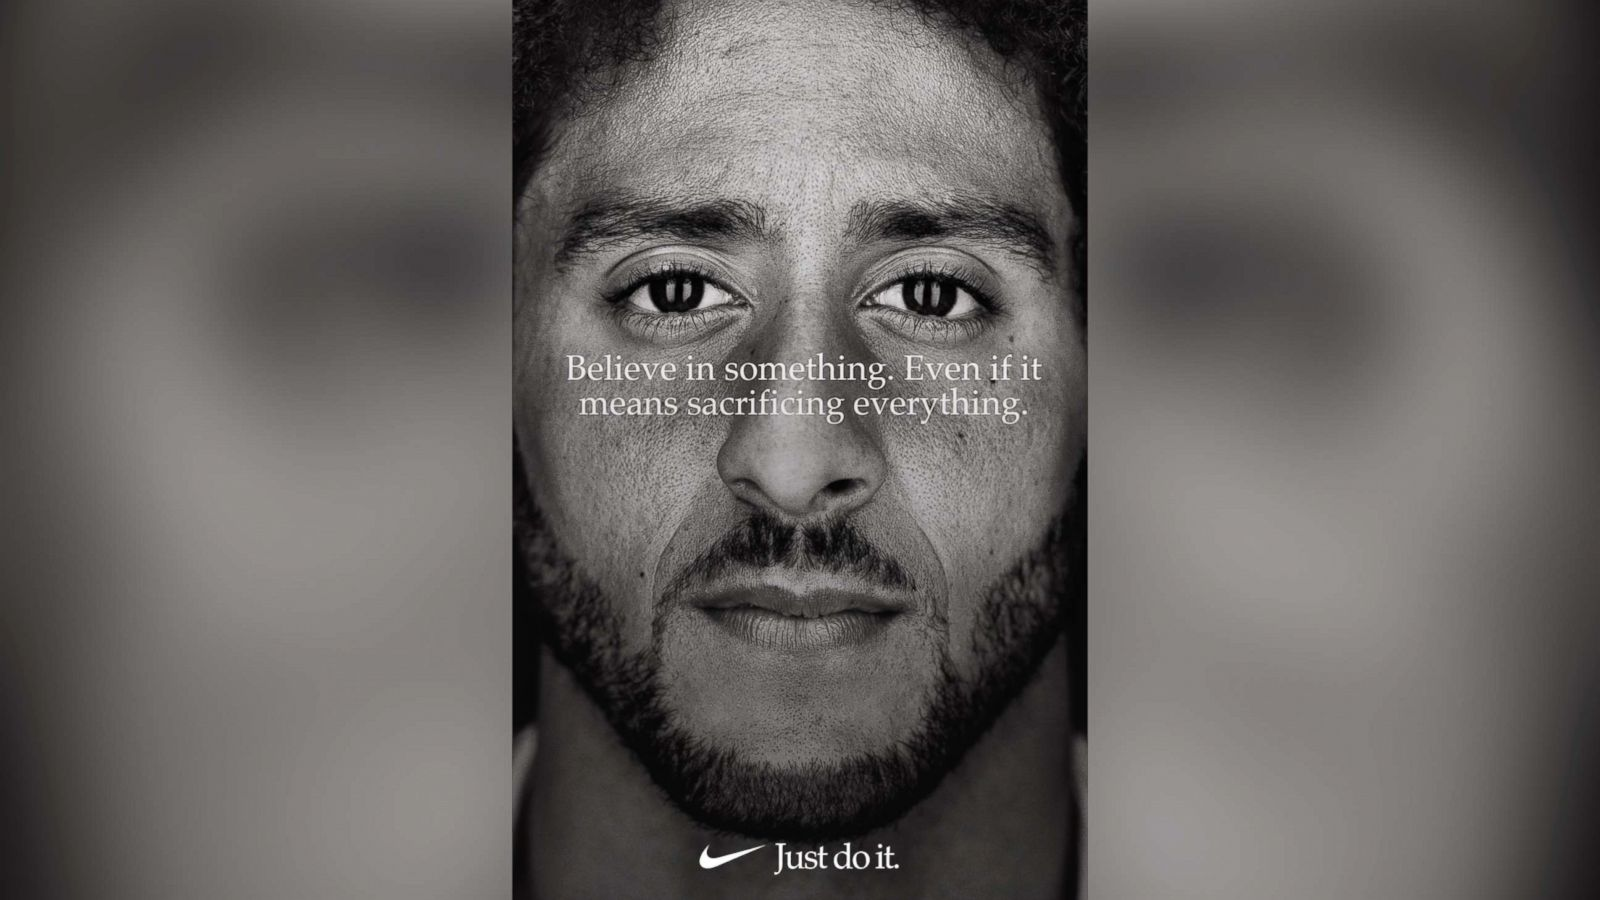 Nike Sales Booming After Colin Kaepernick Ad Invalidating Critics Abc News